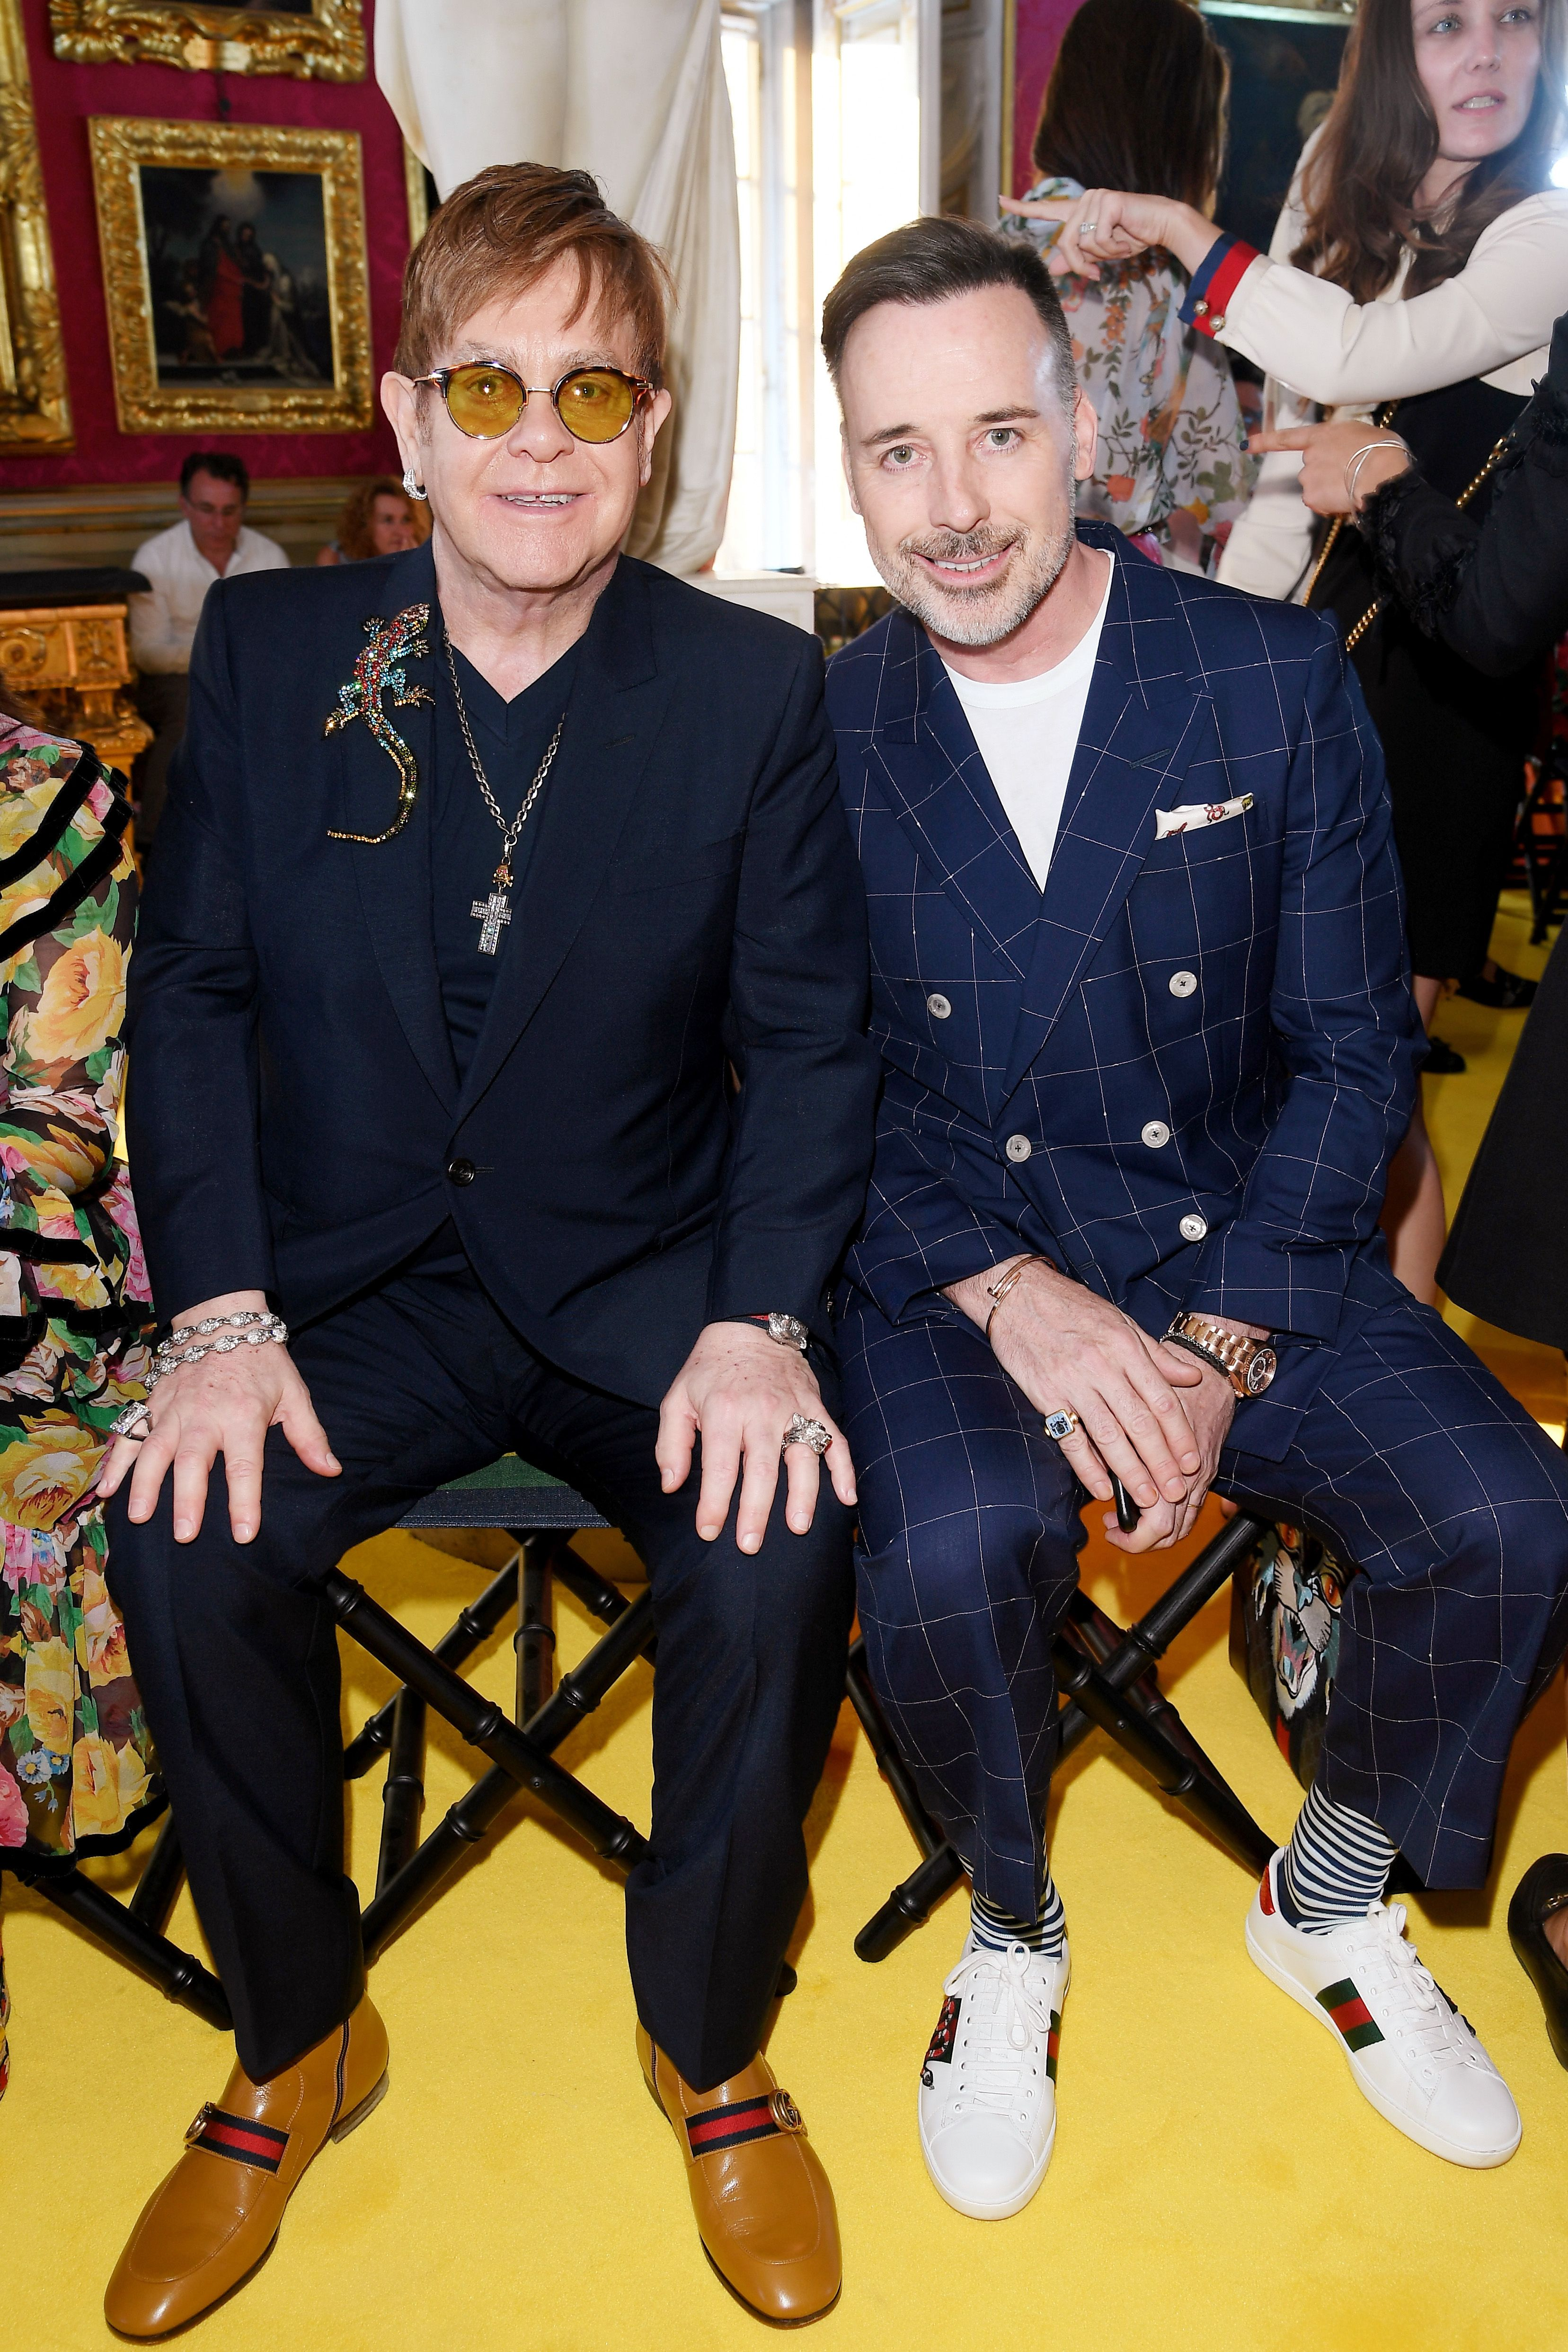 Sir Elton John Together With David Furnish Attending The Gucci